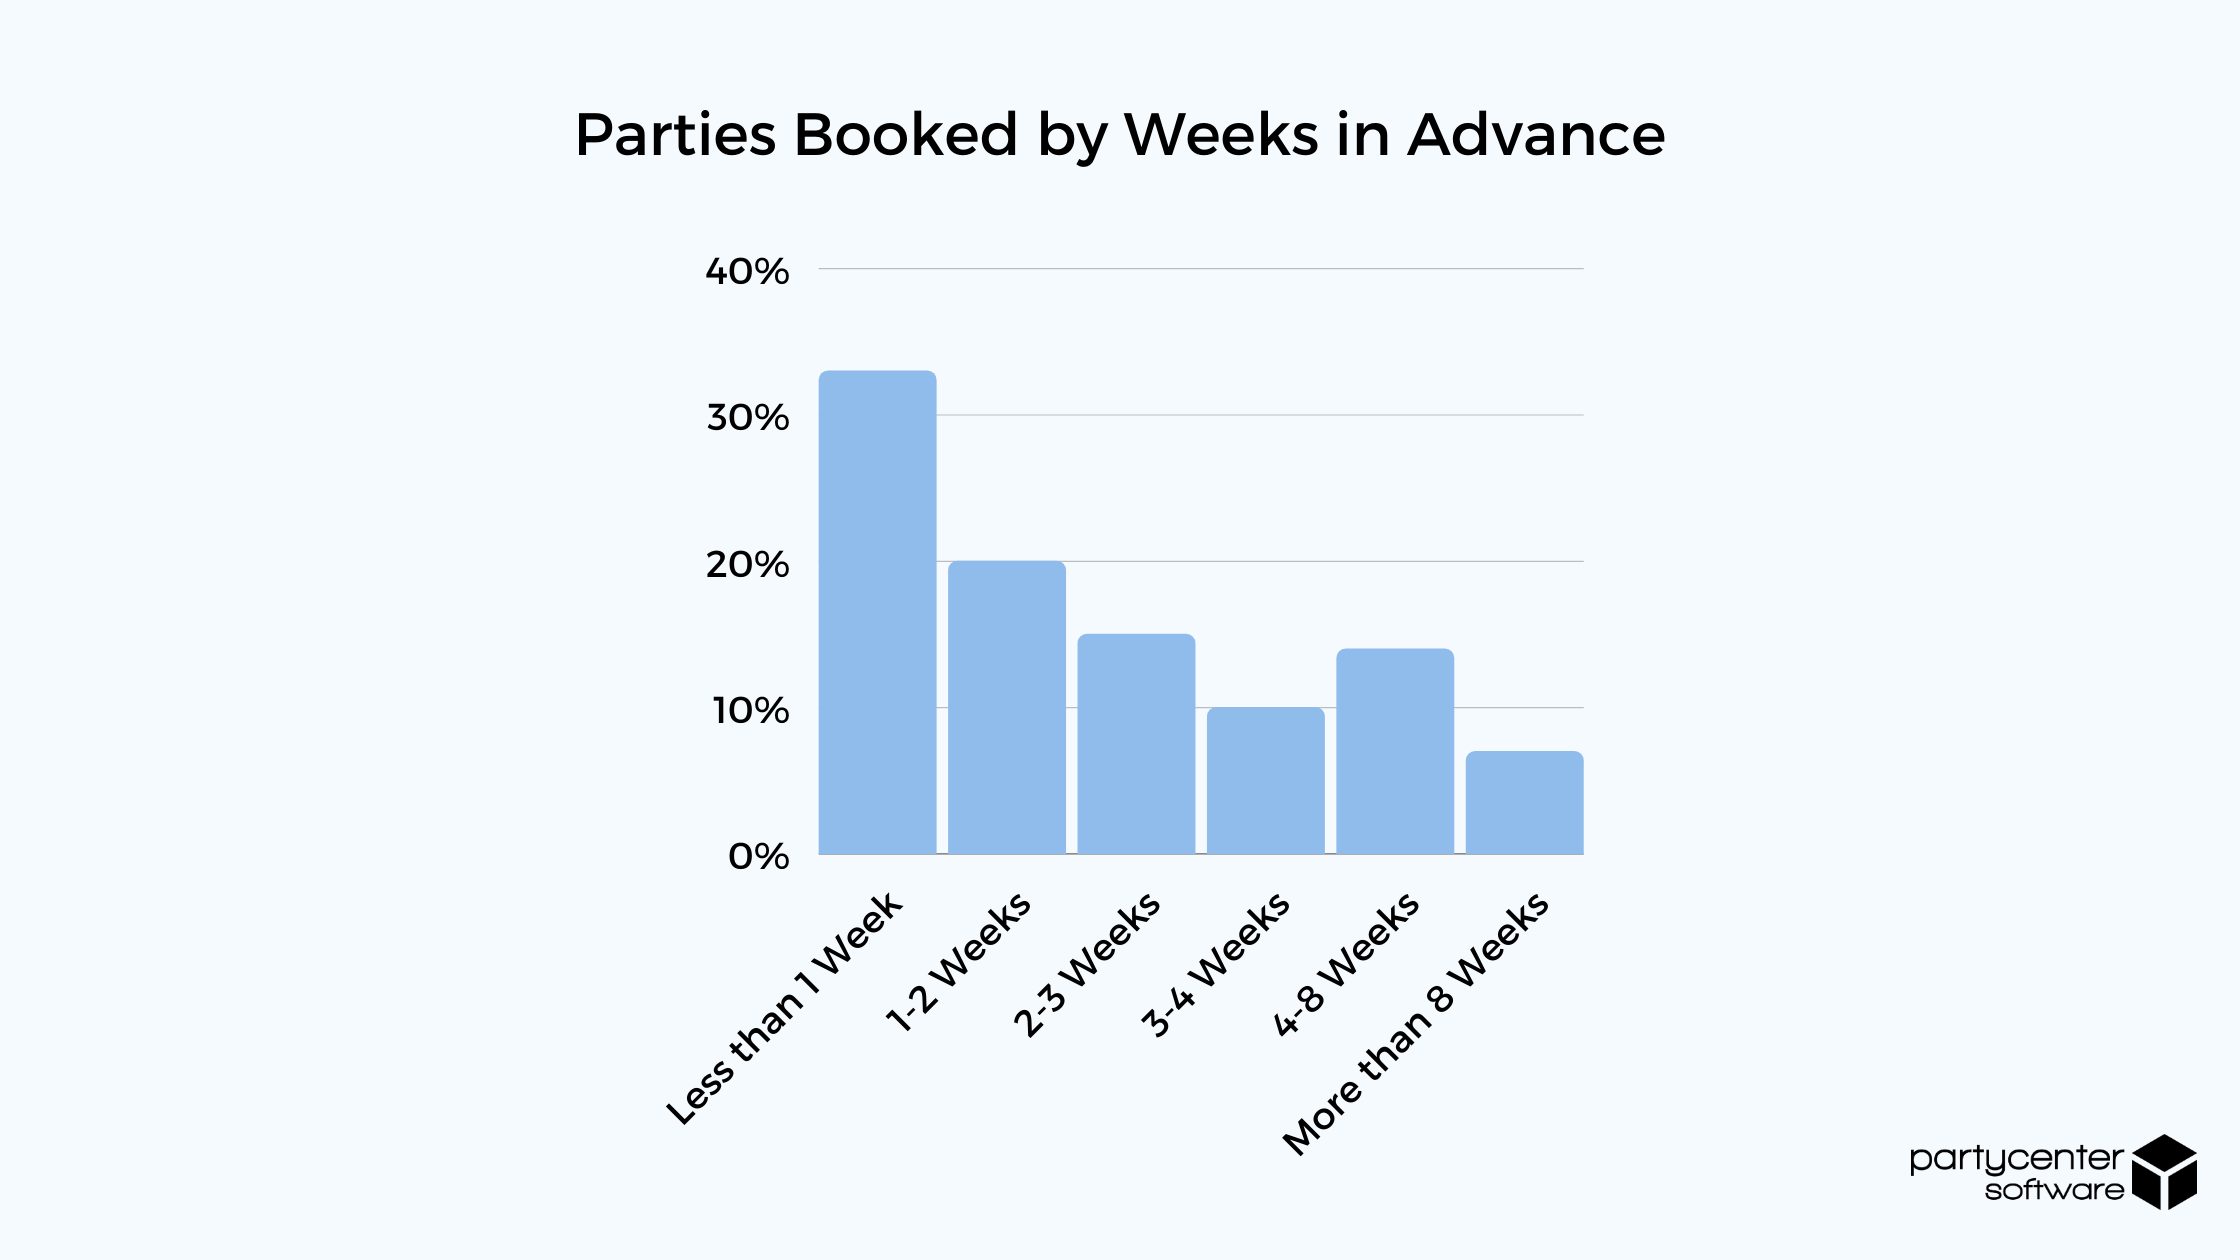 Parties Booked by Week in Advance - 2020